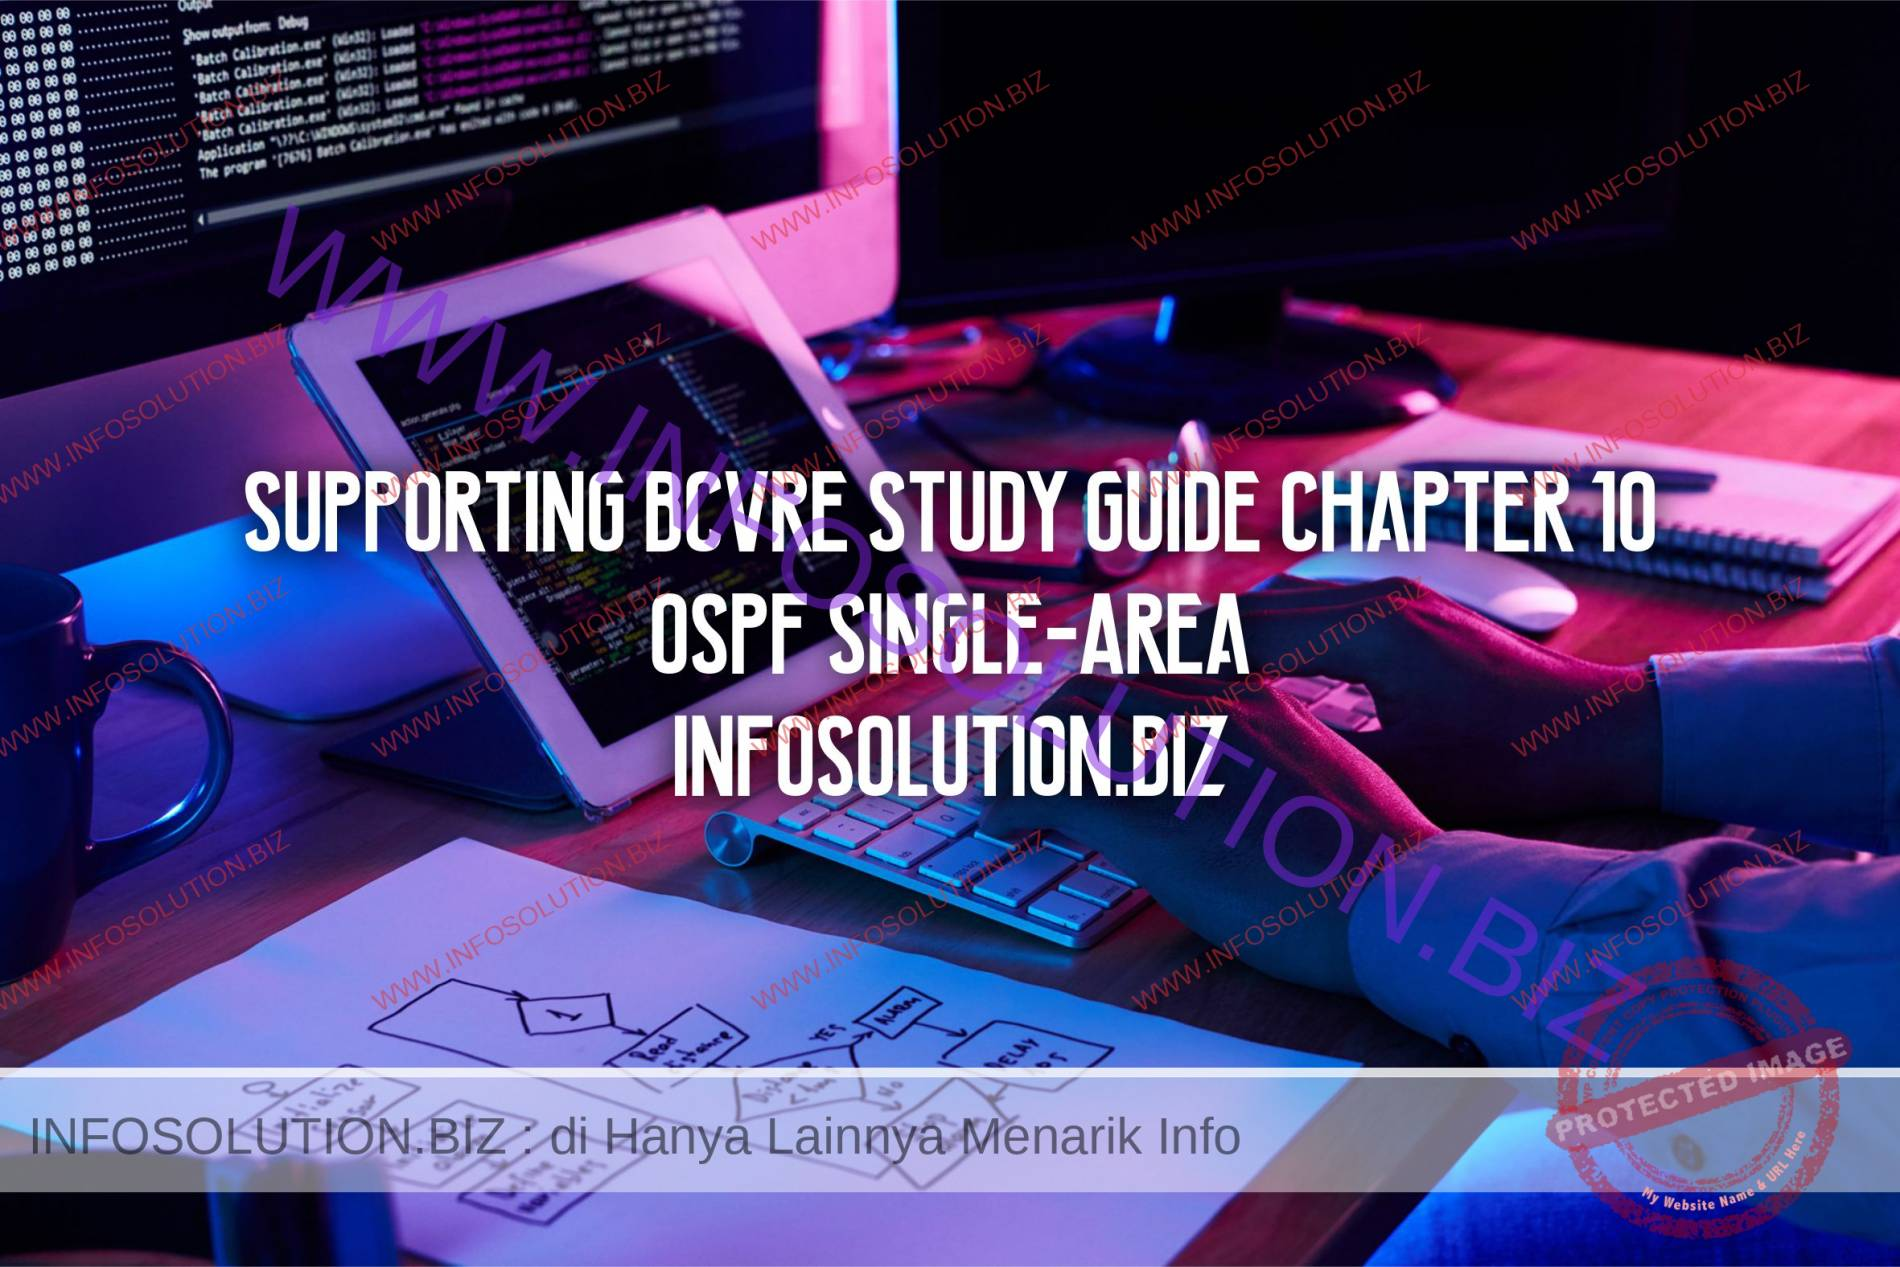 Supporting BCVRE Study Guide Chapter 10 OSPF Single-Area